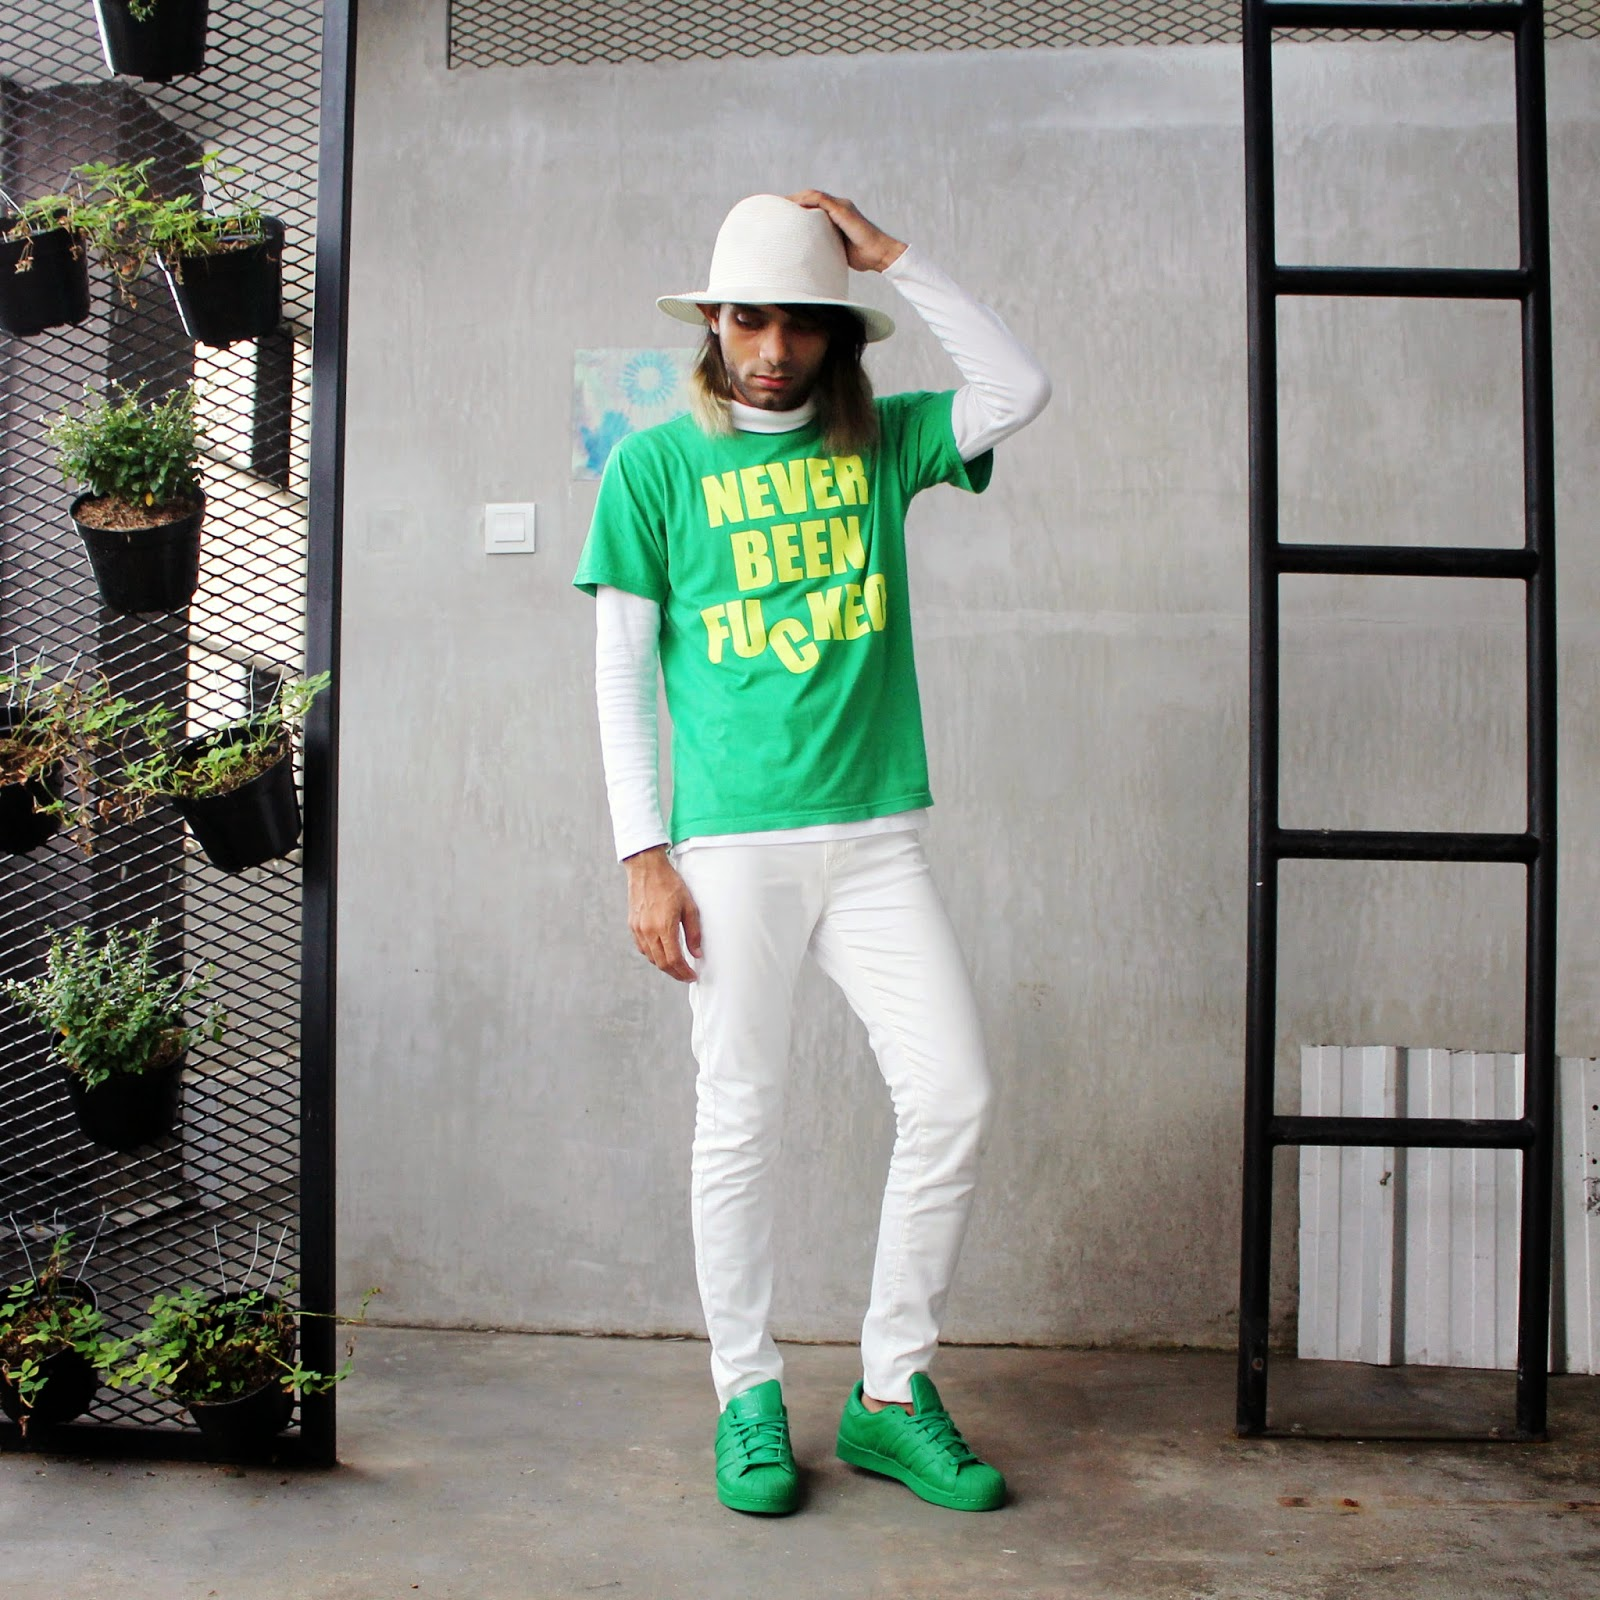 Mr Rebel in Town - King Fahad Scale - Adidas Superstar Supercolor Green - Men Personal Style Blogger Indonesia (33)